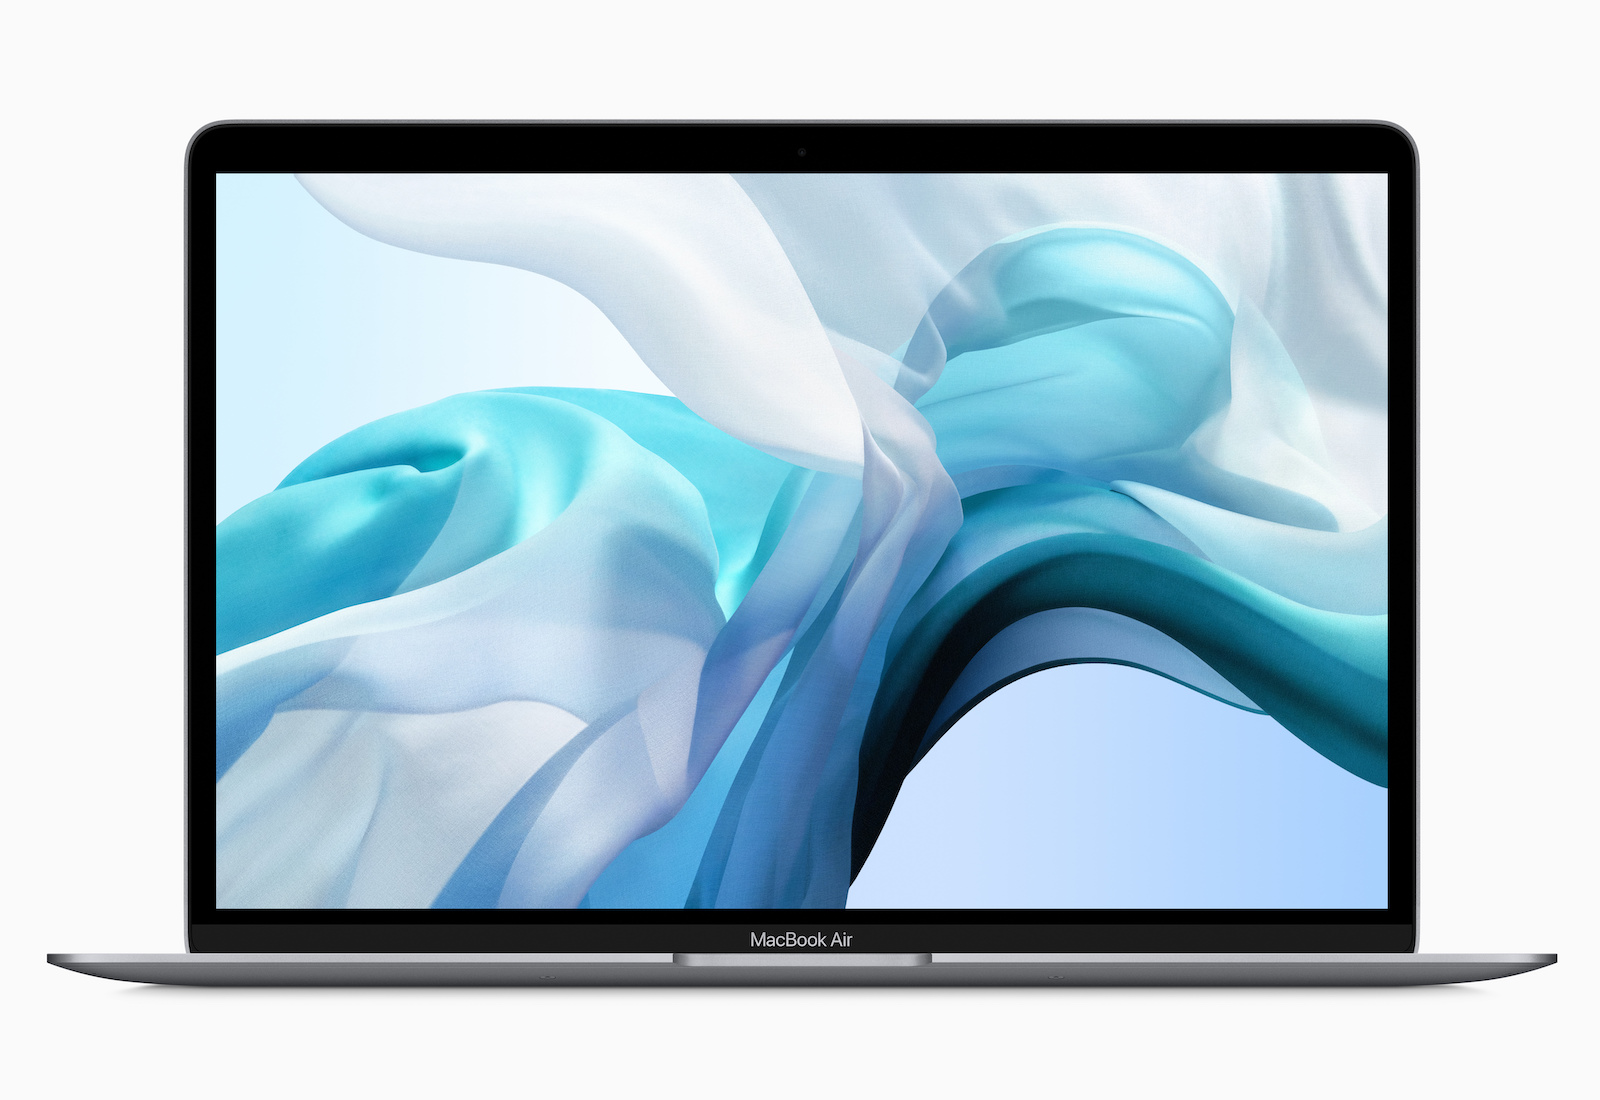 Apple-MacBook-Air-and-MacBook-Pro-update-wallpaper-screen-070919.jpg